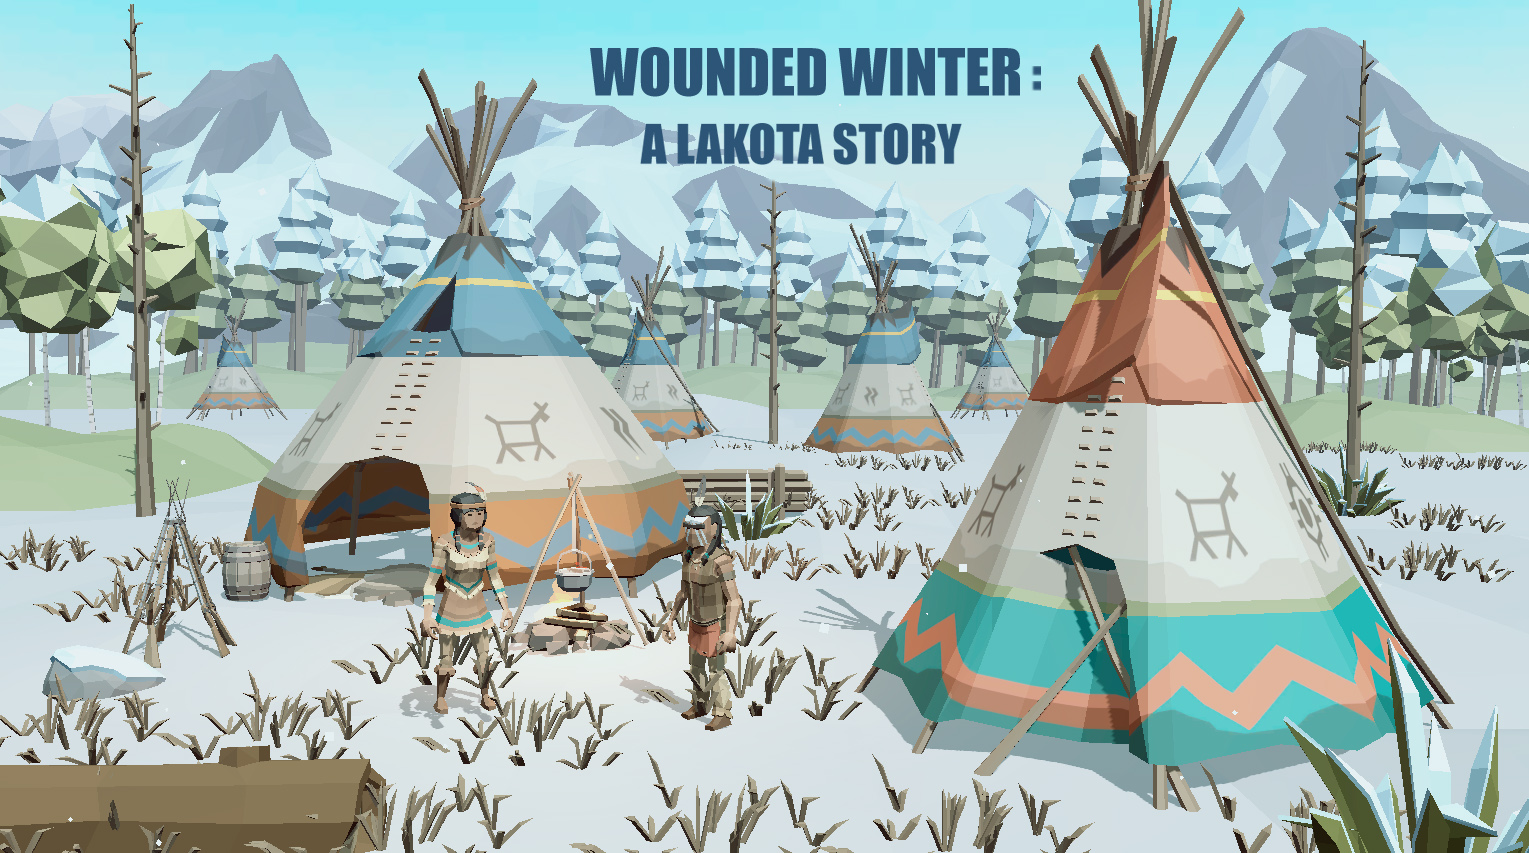 Wounded Winter: A Lakota Story